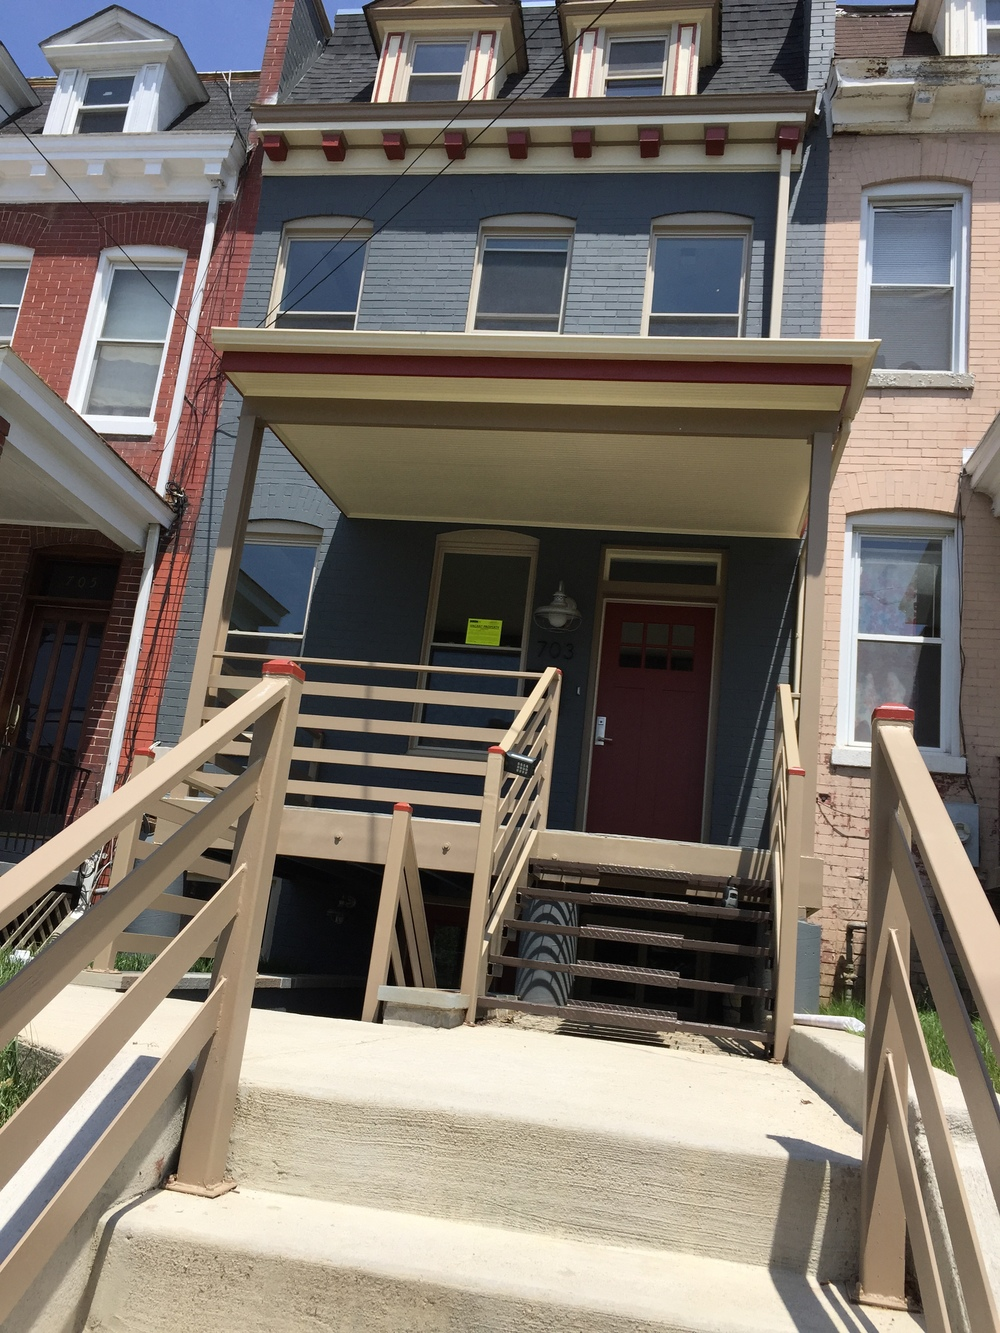 Newly renovated 703 Upshur St NW has a nice yellow Vacant Property sticker.